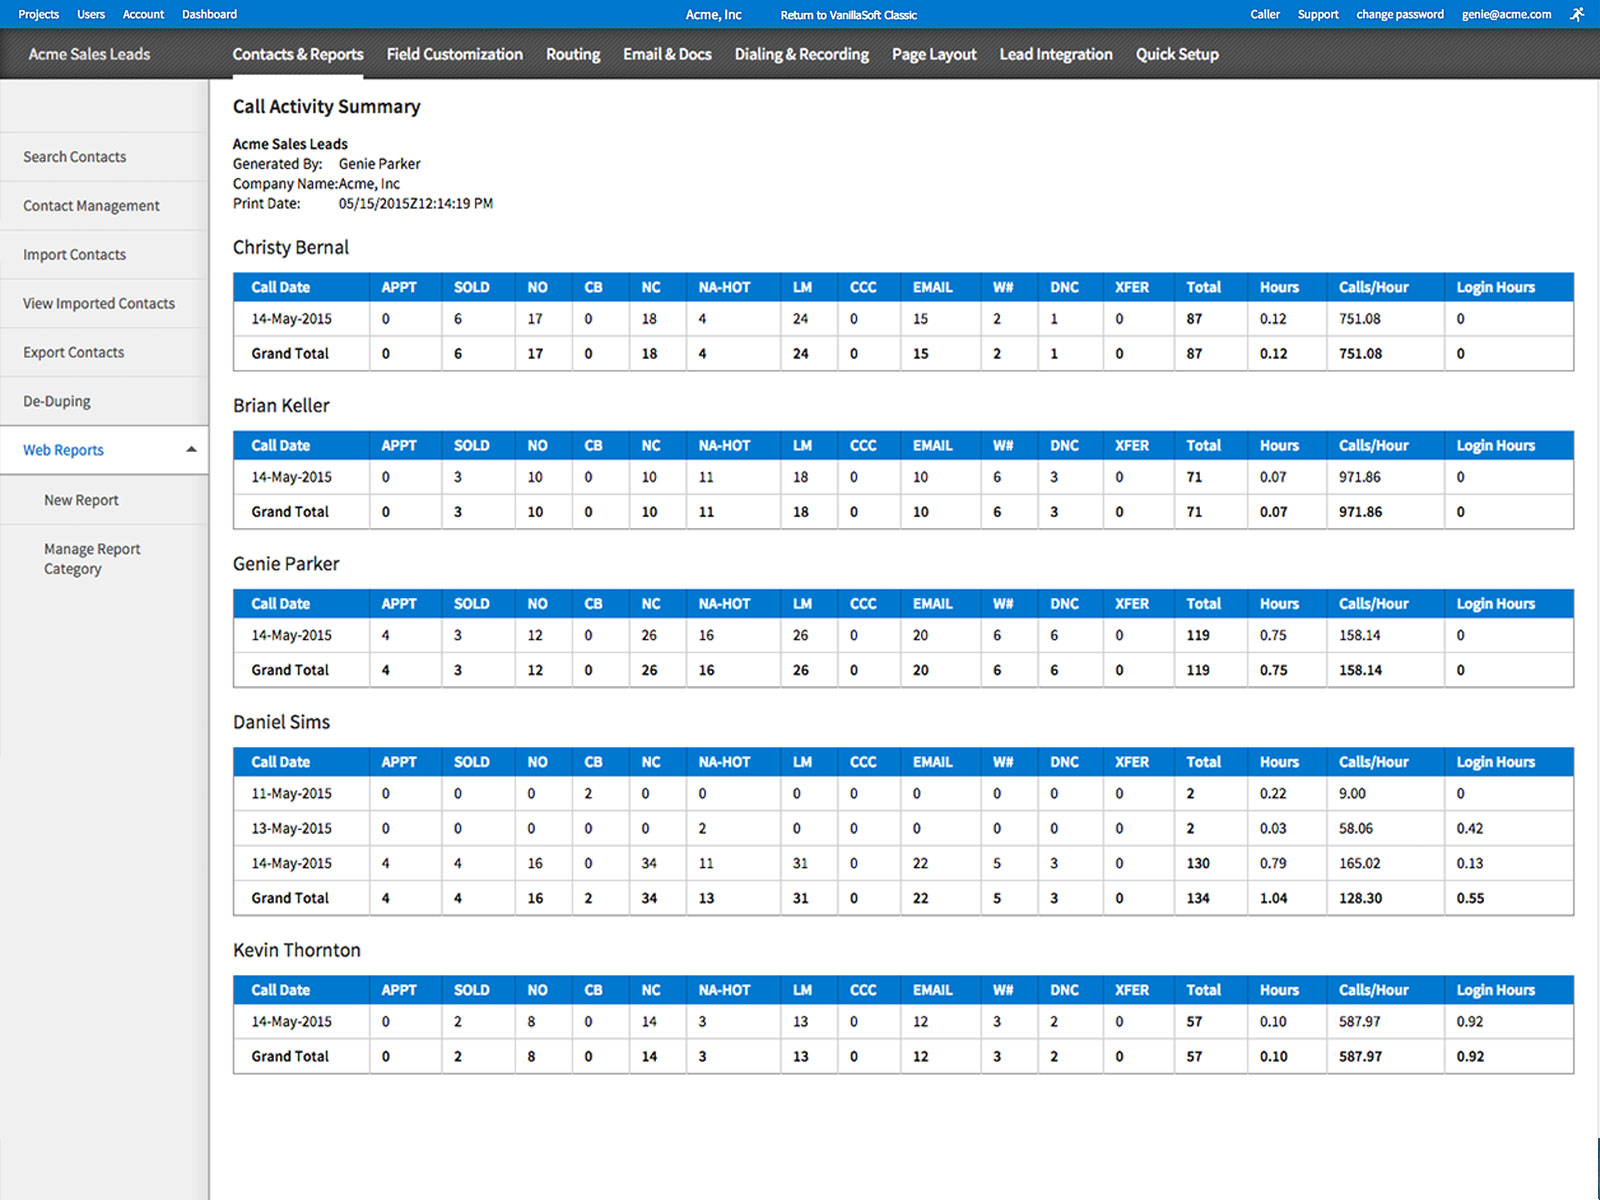 VanillaSoft Software - Contacts and Reports